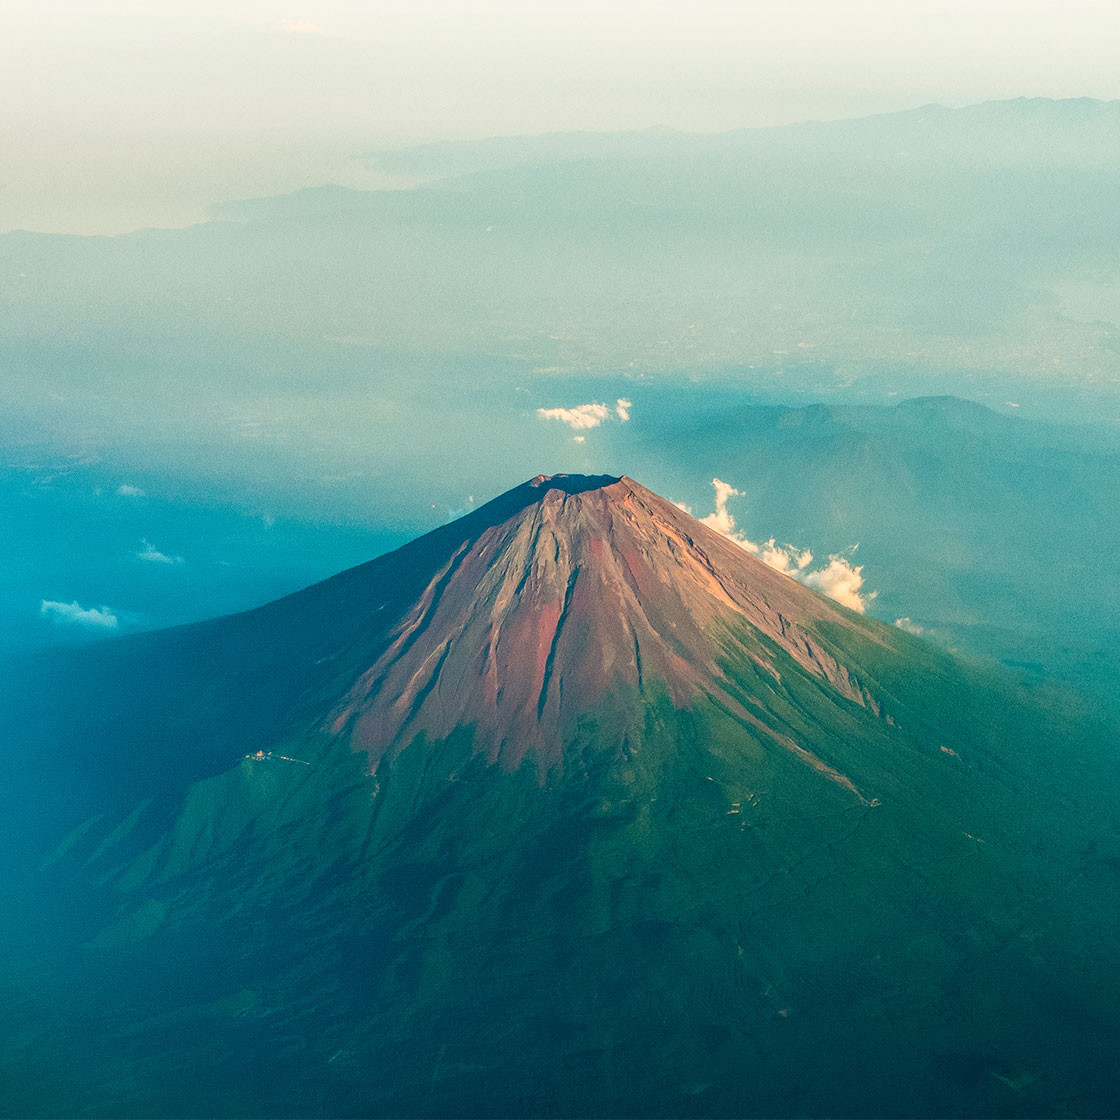 Falling rocks kill woman in Mount Fuji. How can similar incidents be avoided?